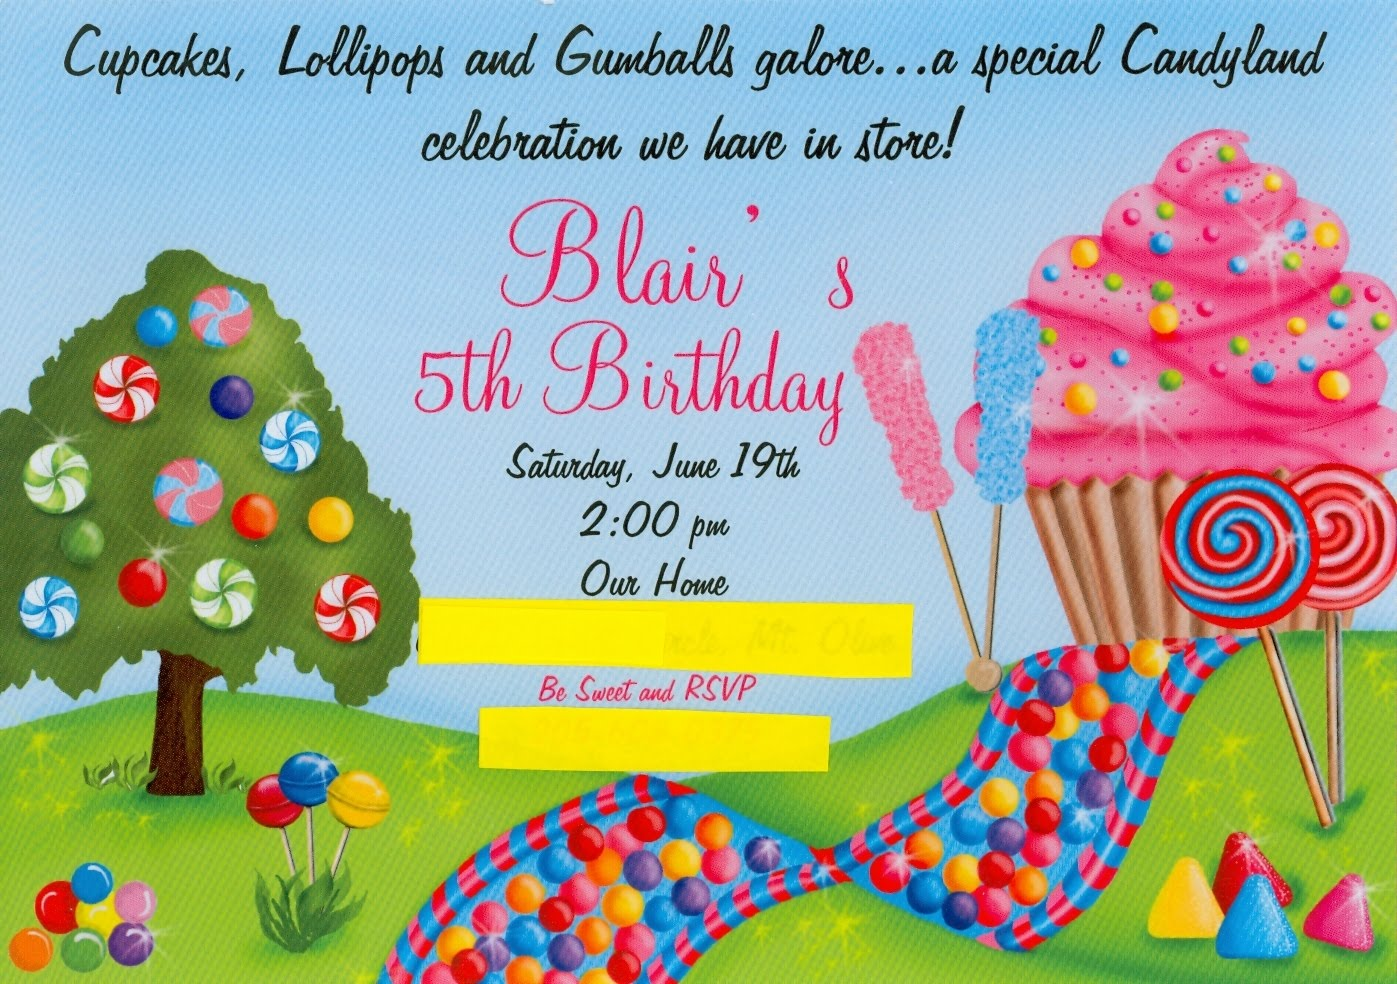 Candy Land Theme Invitations http://donna-dukesfamily.blogspot.com/2010_06_01_archive.html